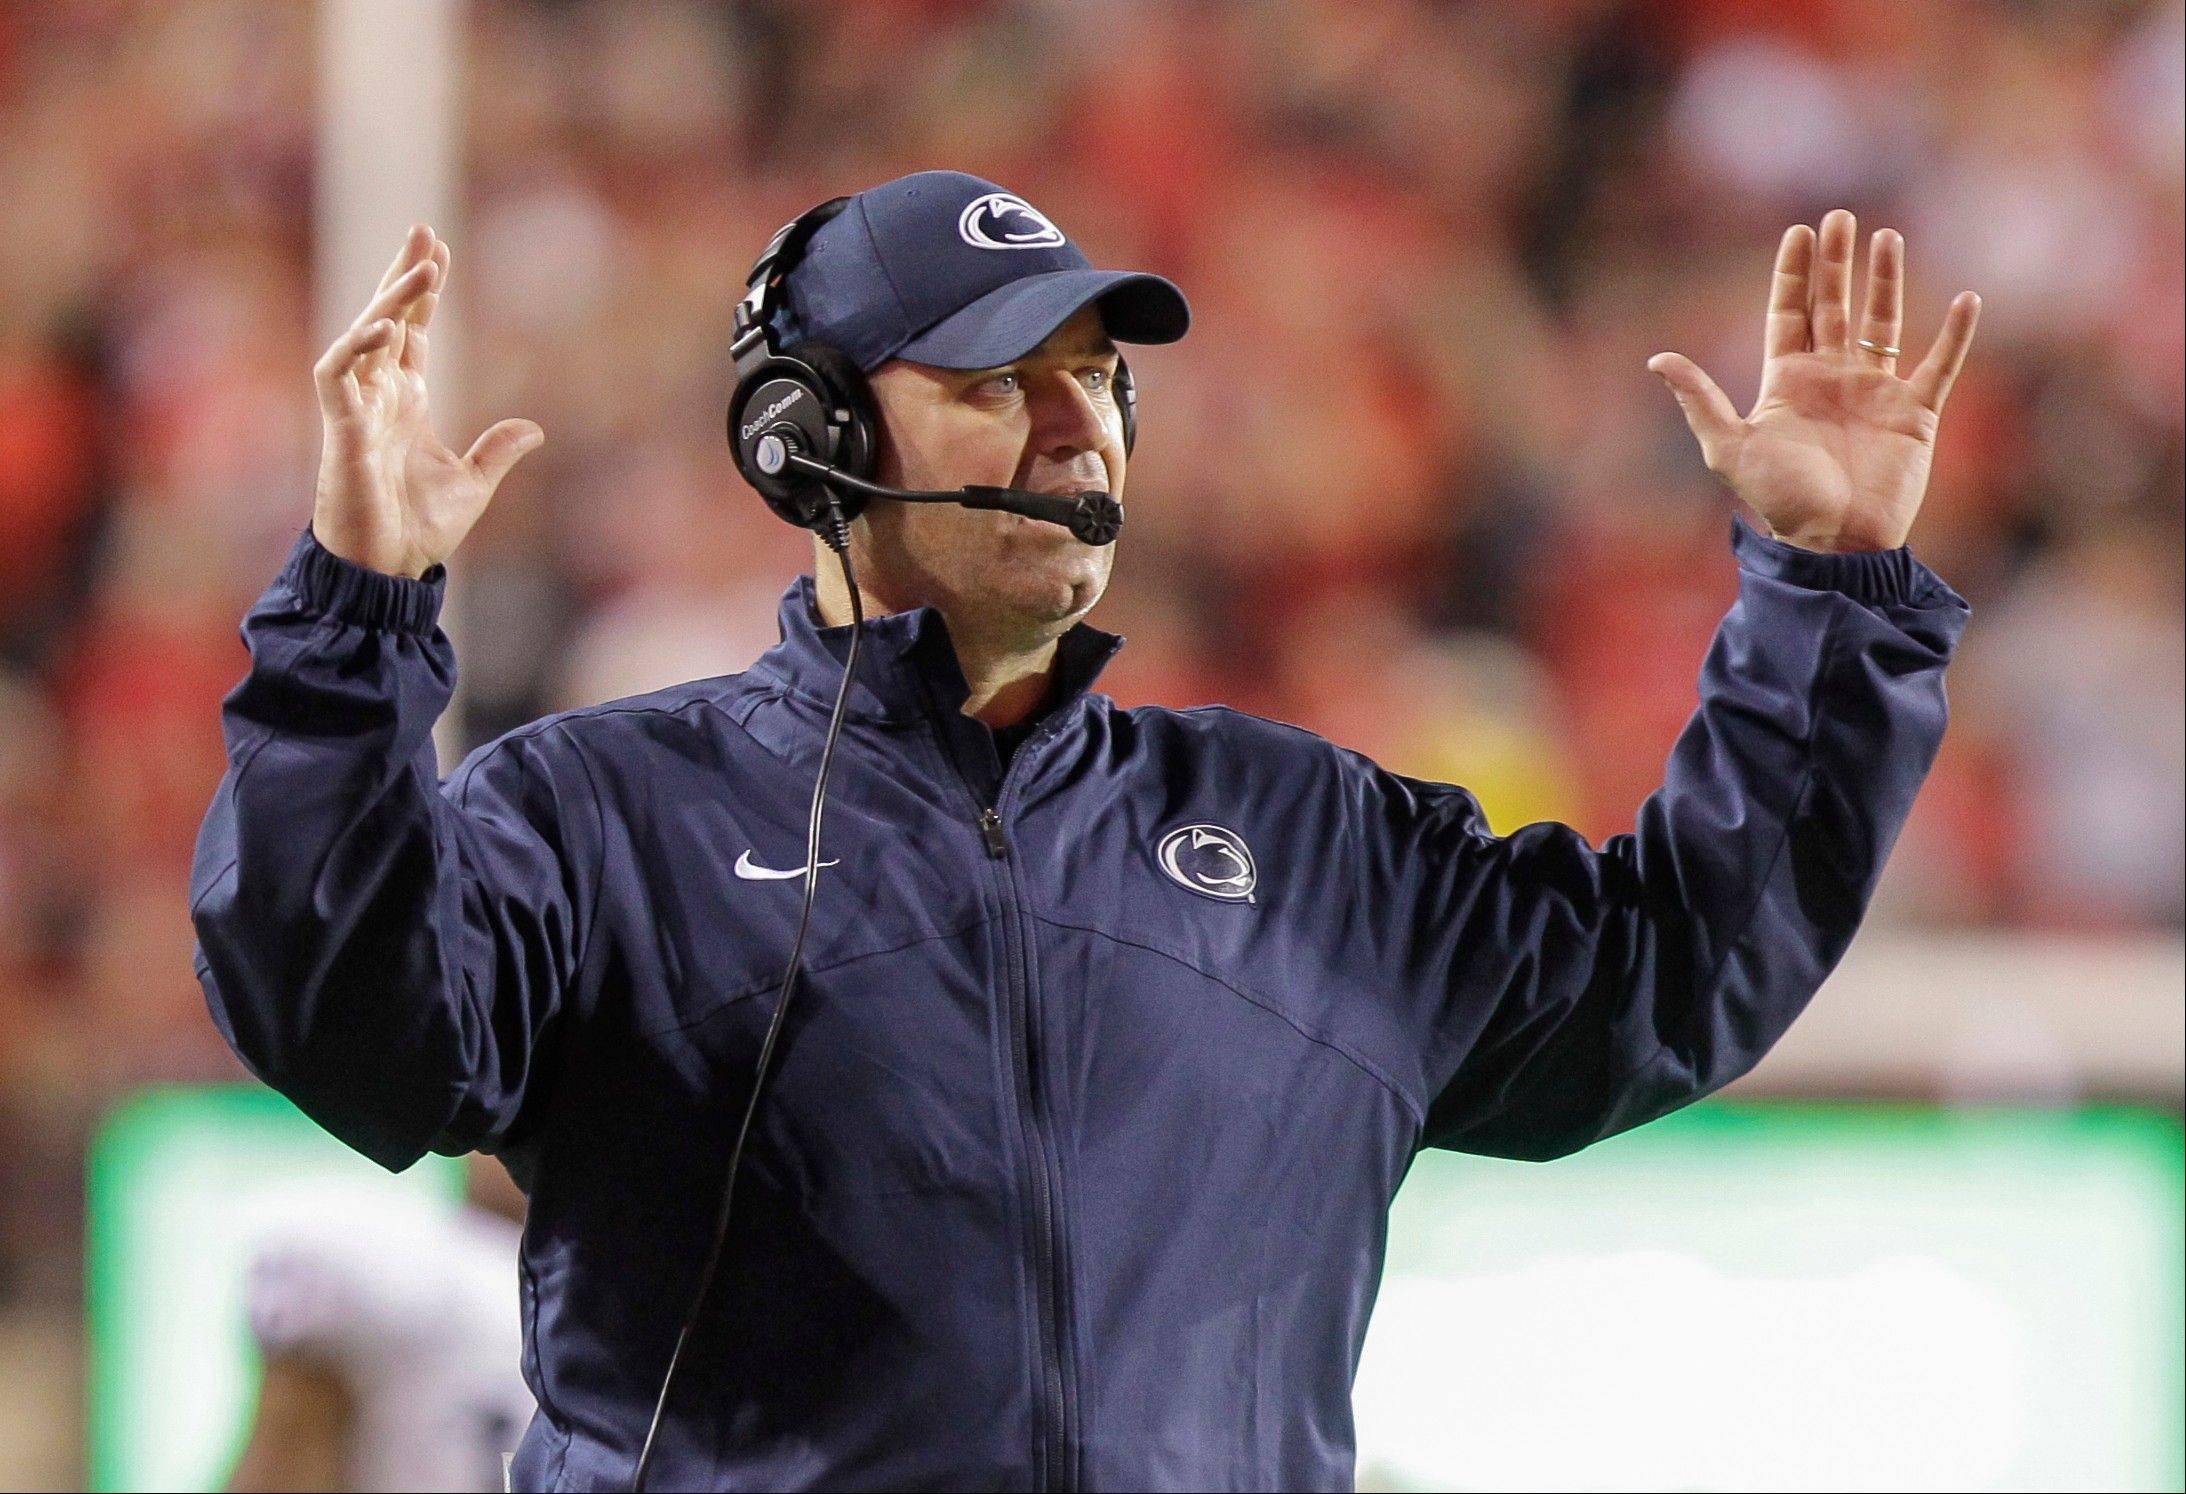 Penn State head coach Bill O�Brien on Tuesday was named the Big Ten�s coach of the year, earning allocates from fellow coaches and the sportswriters reporting on the conference.